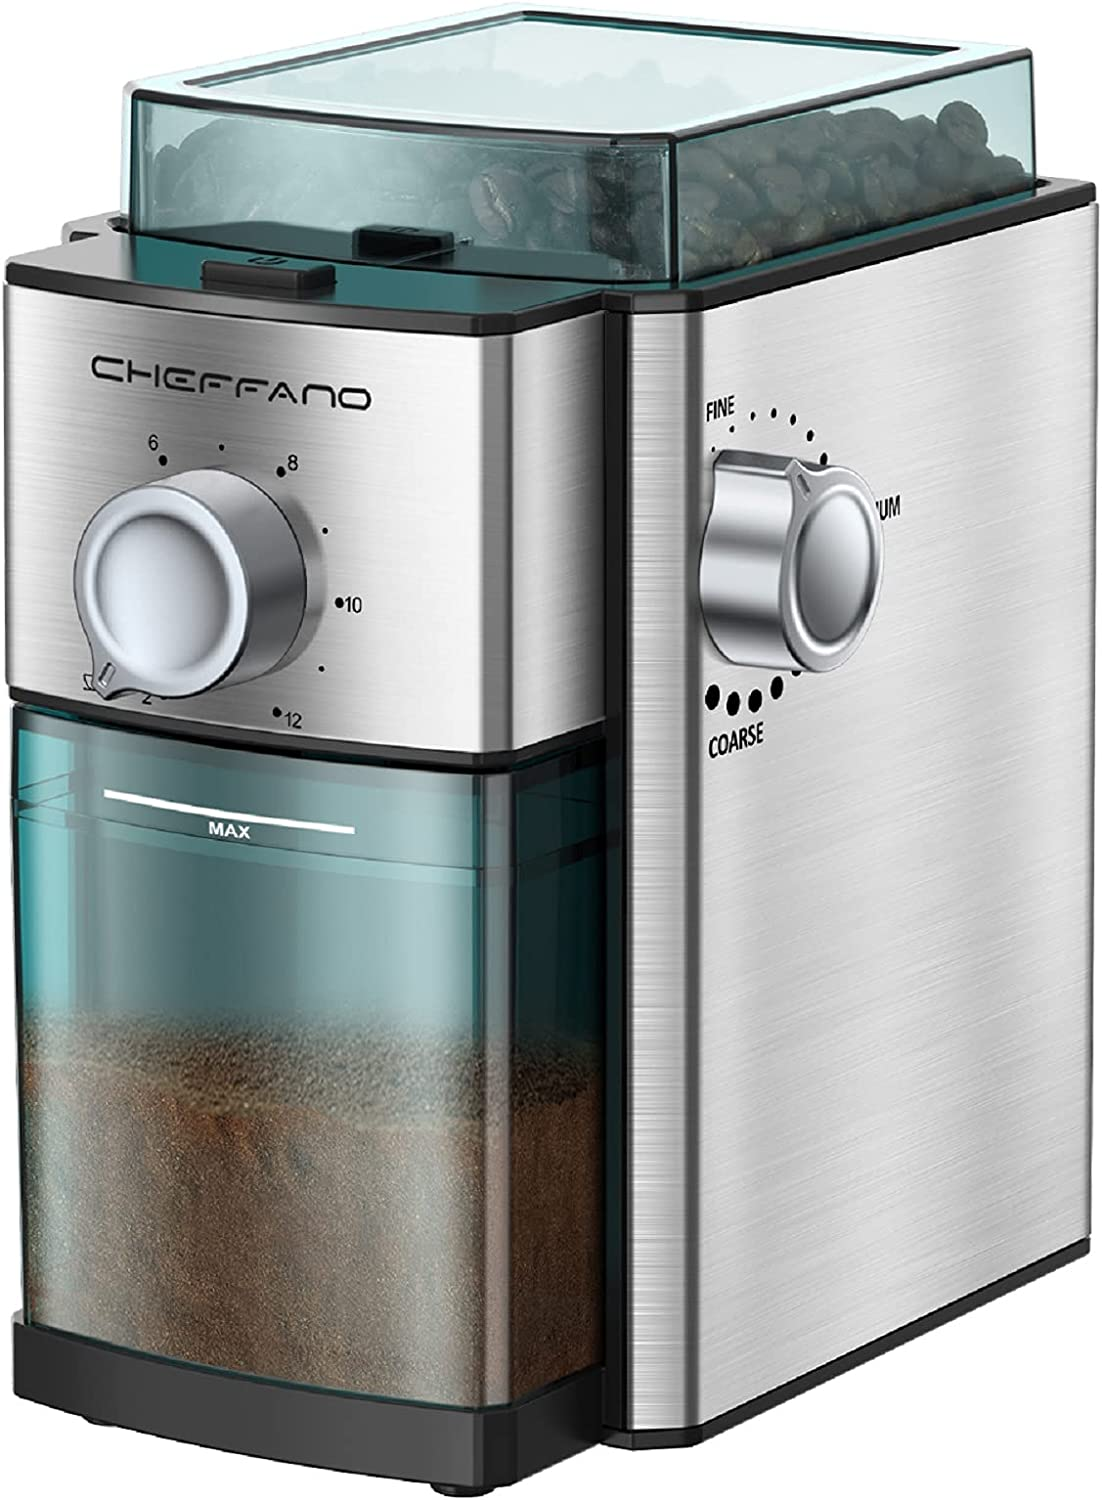 Burr Coffee Grinder With 14 Precise Adj Settings All items free shipping Max 80% OFF Grind 2-12 cup